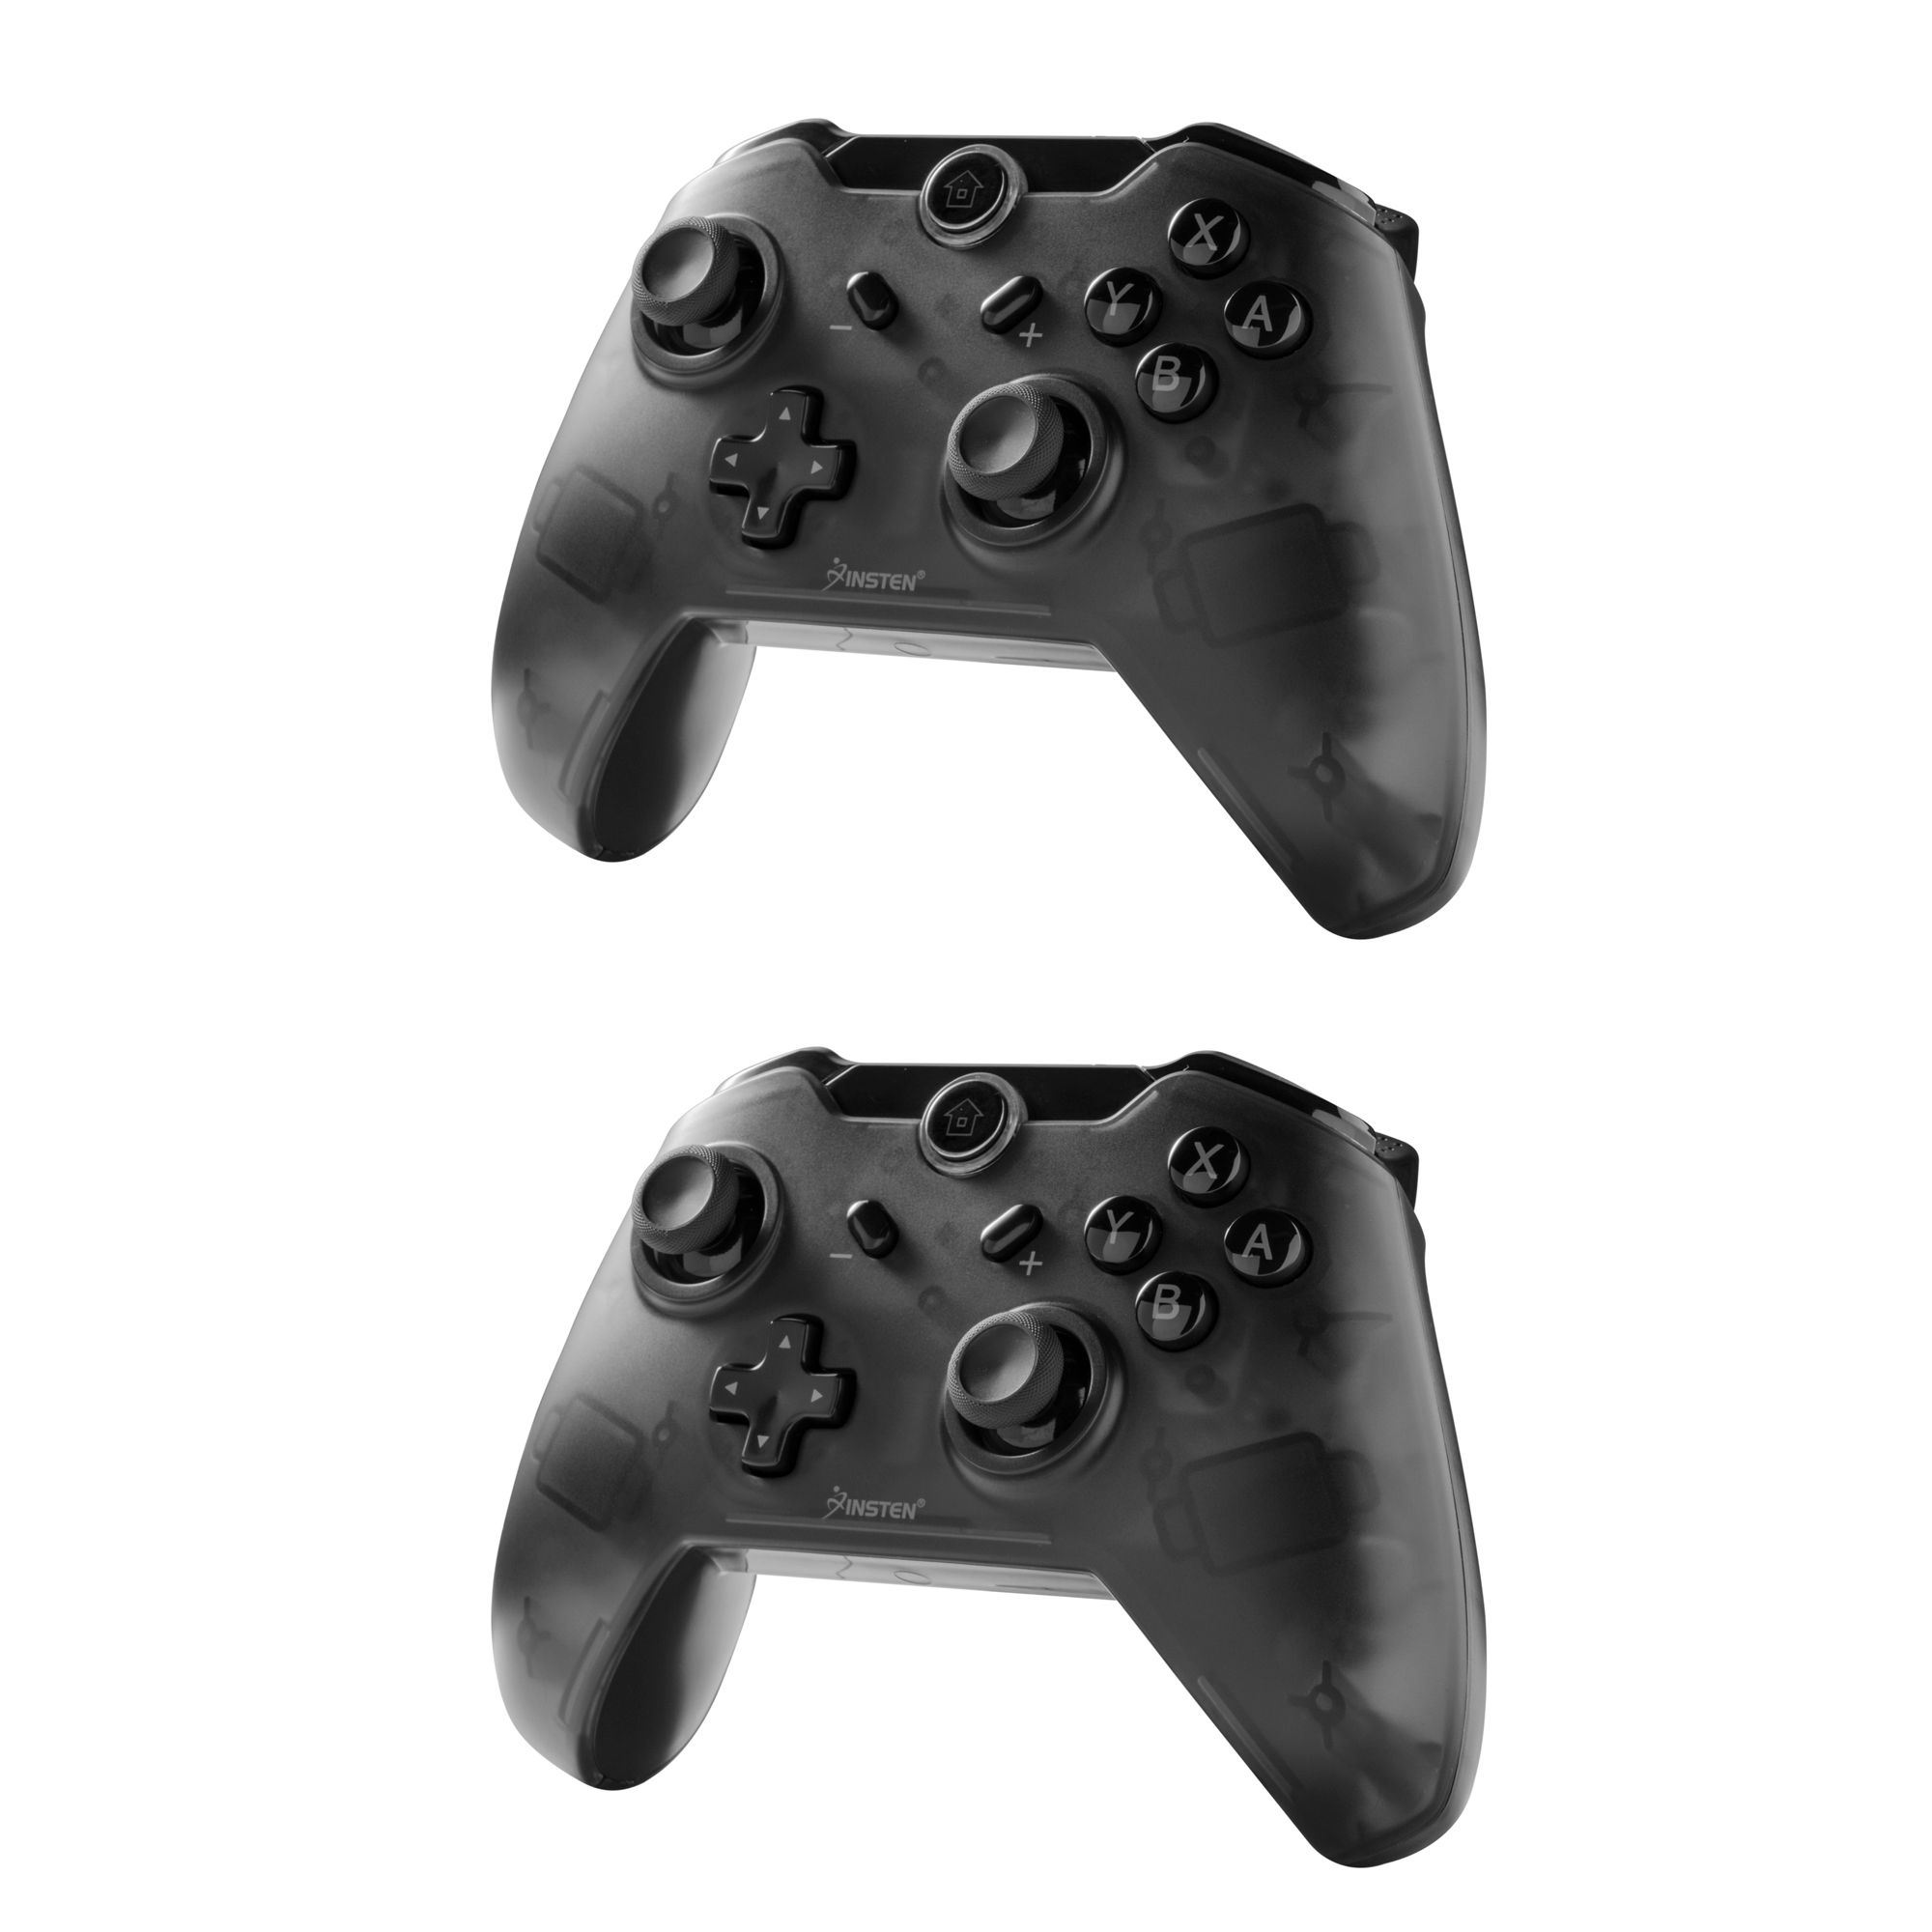 Insten 2-Pack Wireless Pro Controller with Micro USB Charge Cable For Nintendo Switch - Smoke Black